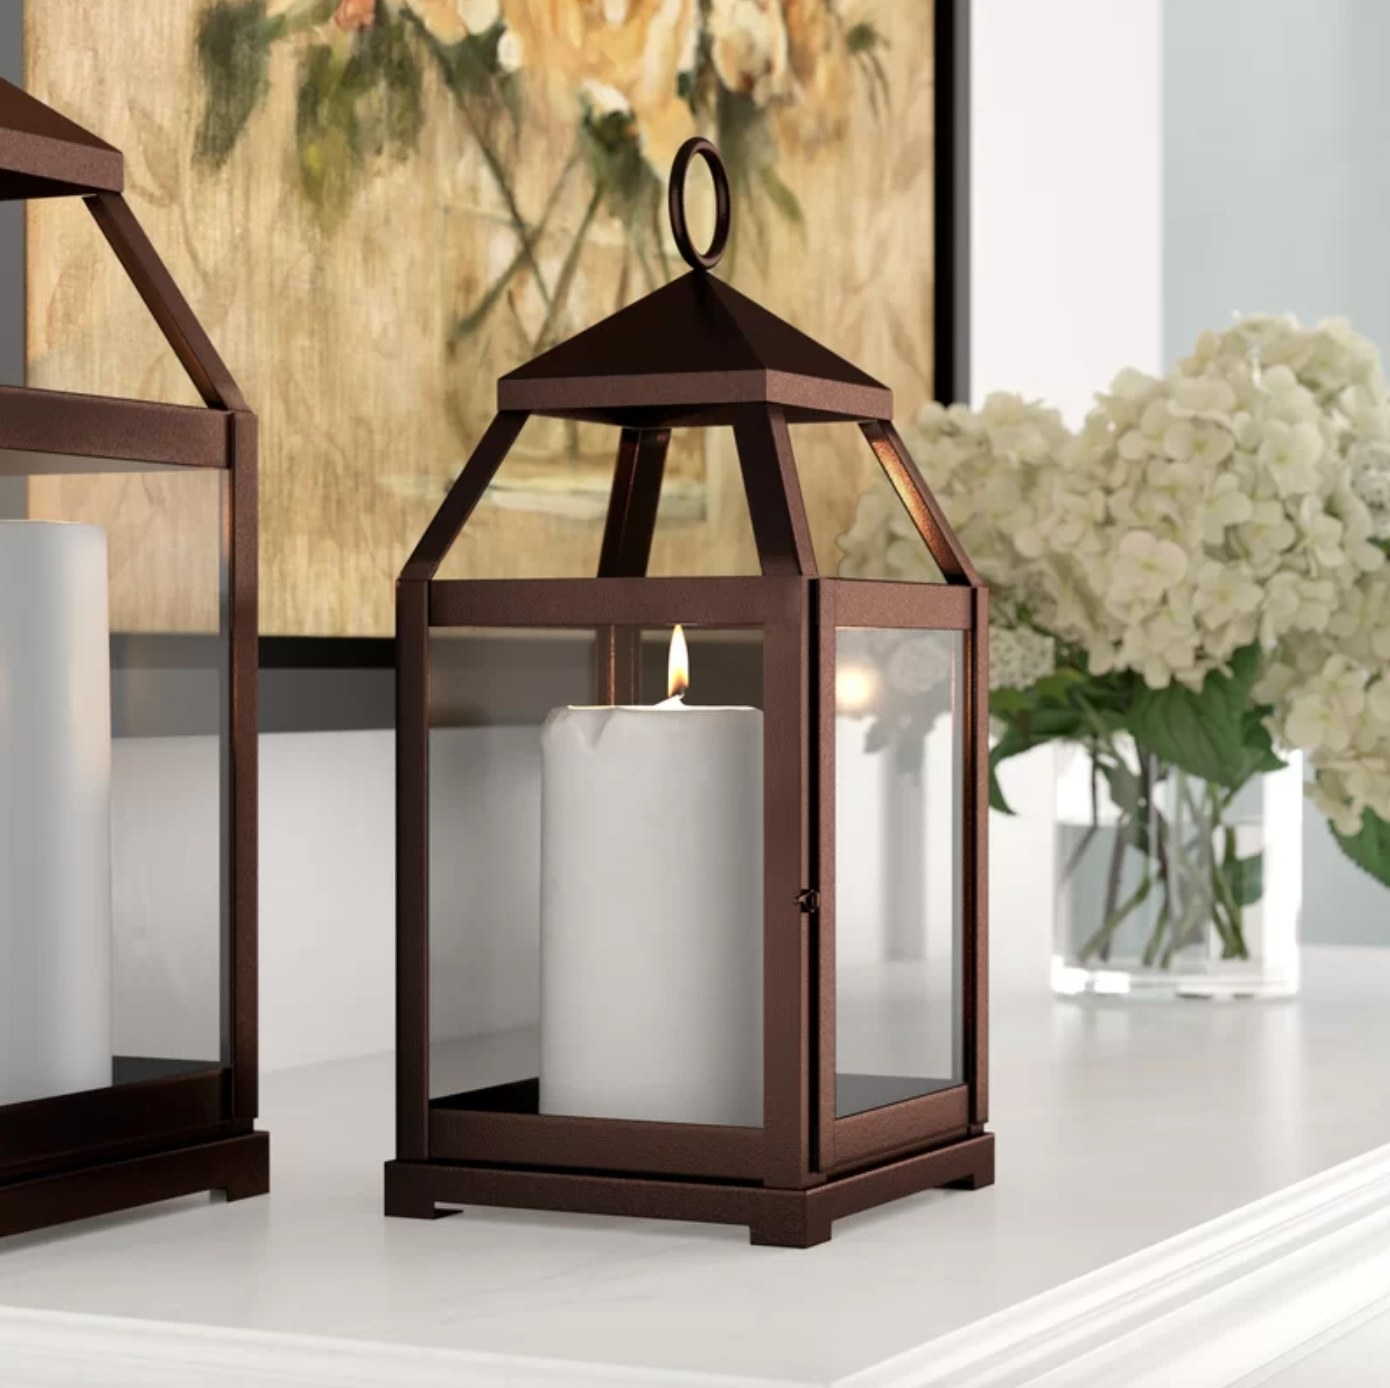 The tabletop lantern in bronze with a white candle inside